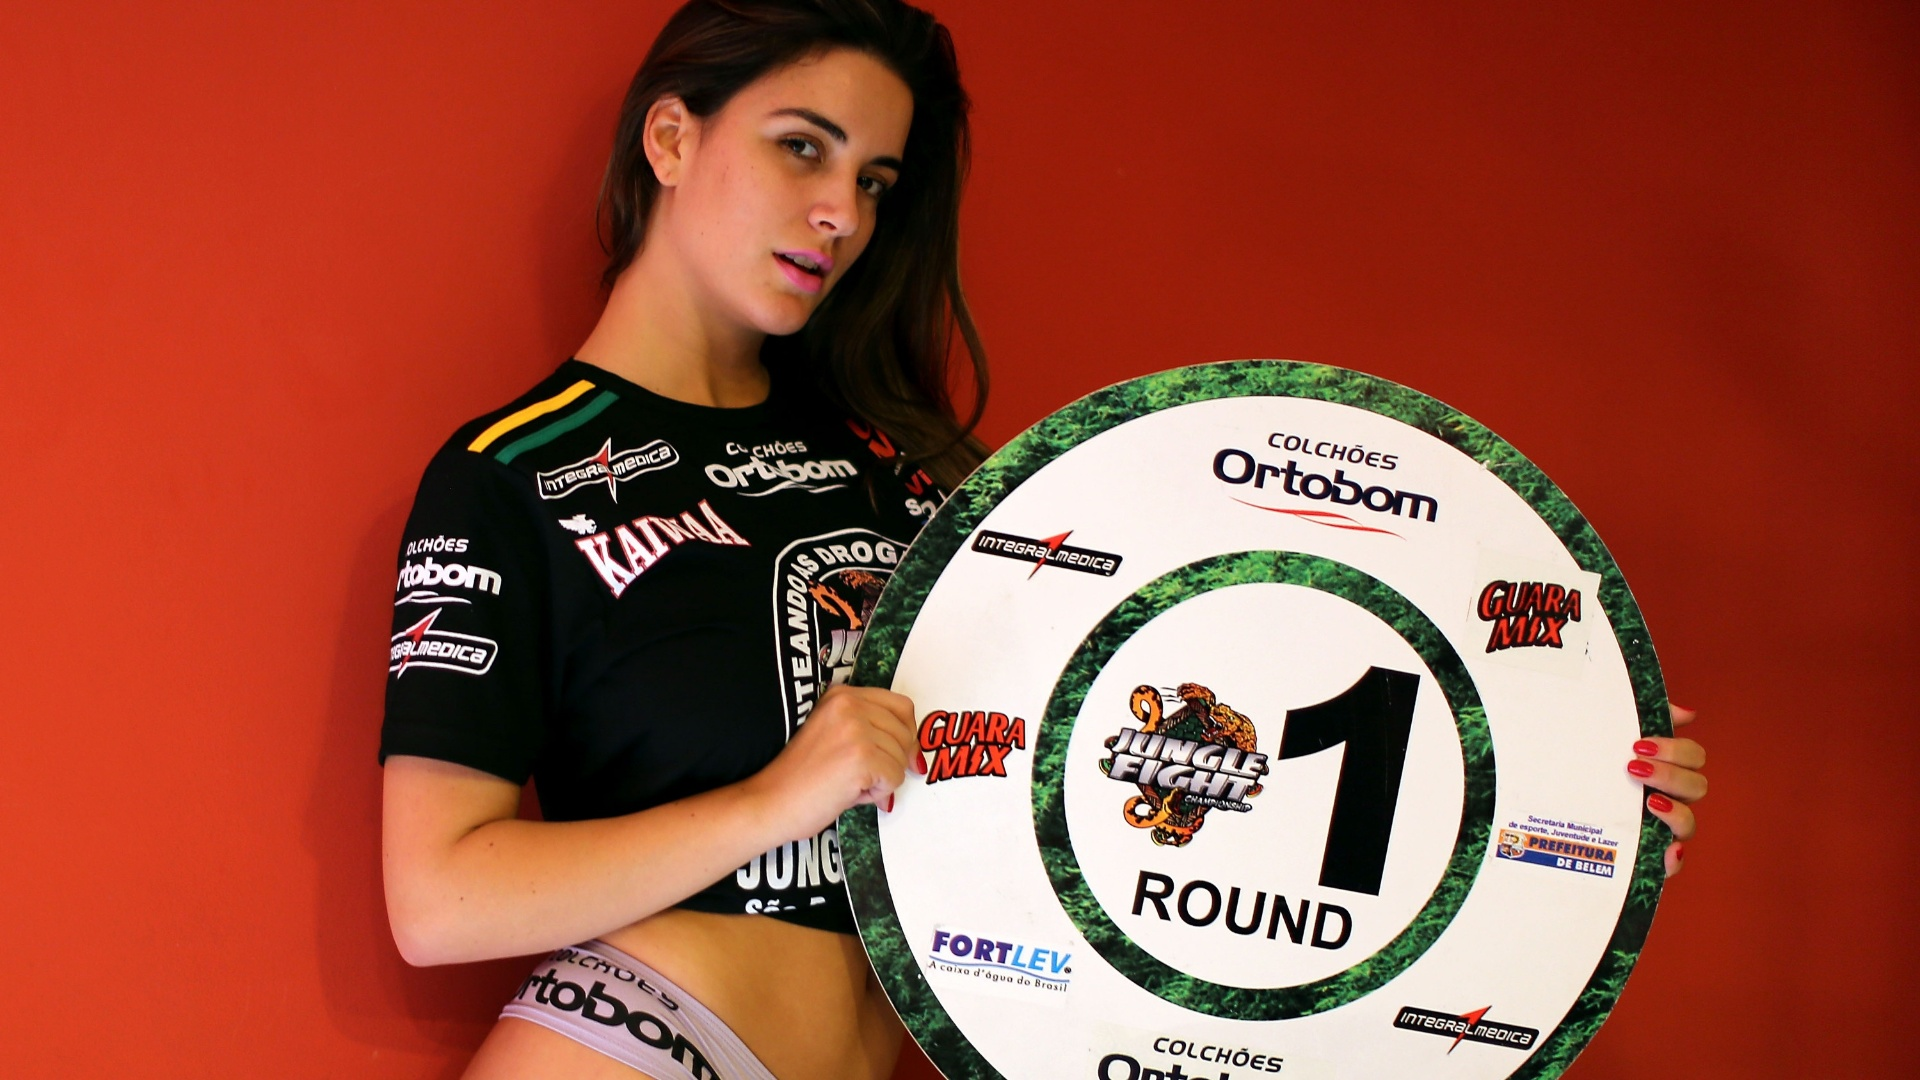 Mais uma ex-BBB ser ring girl do Jungle Fight. Na edio desta sexta-feira, em Porto Alegre, a morena Laisa  quem carregar as plaquinhas entre os rounds